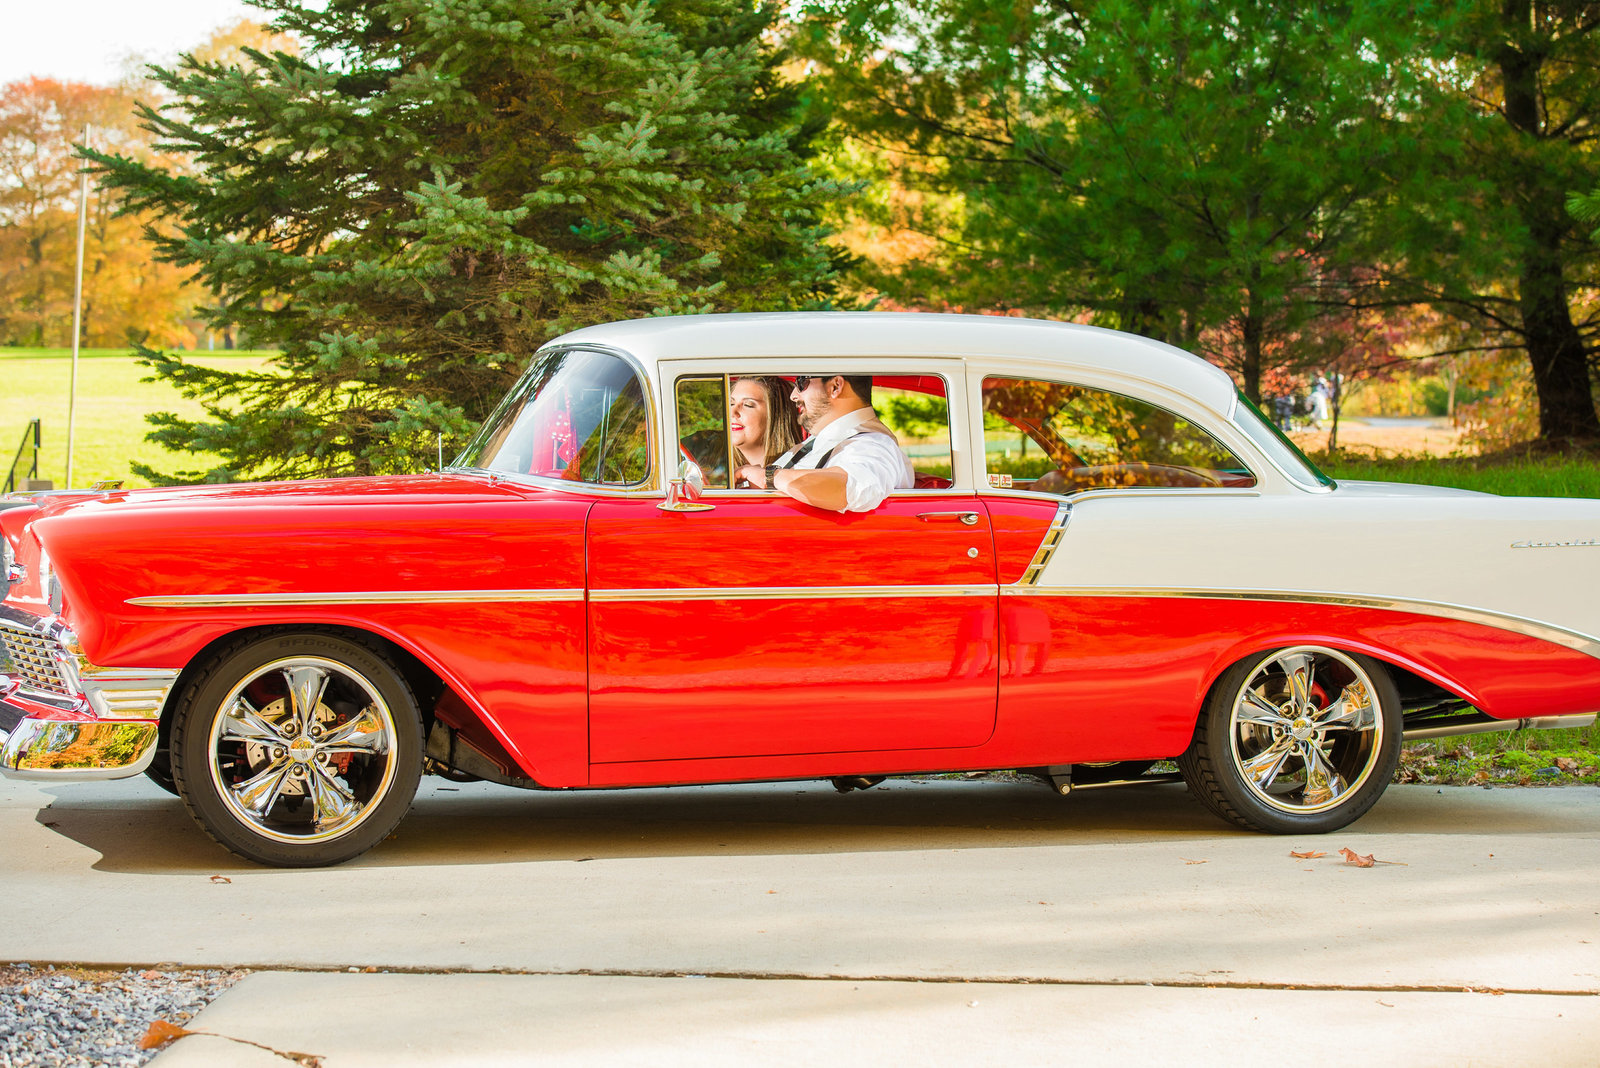 Retro_Pinup_Car_engagement_session_Nj044